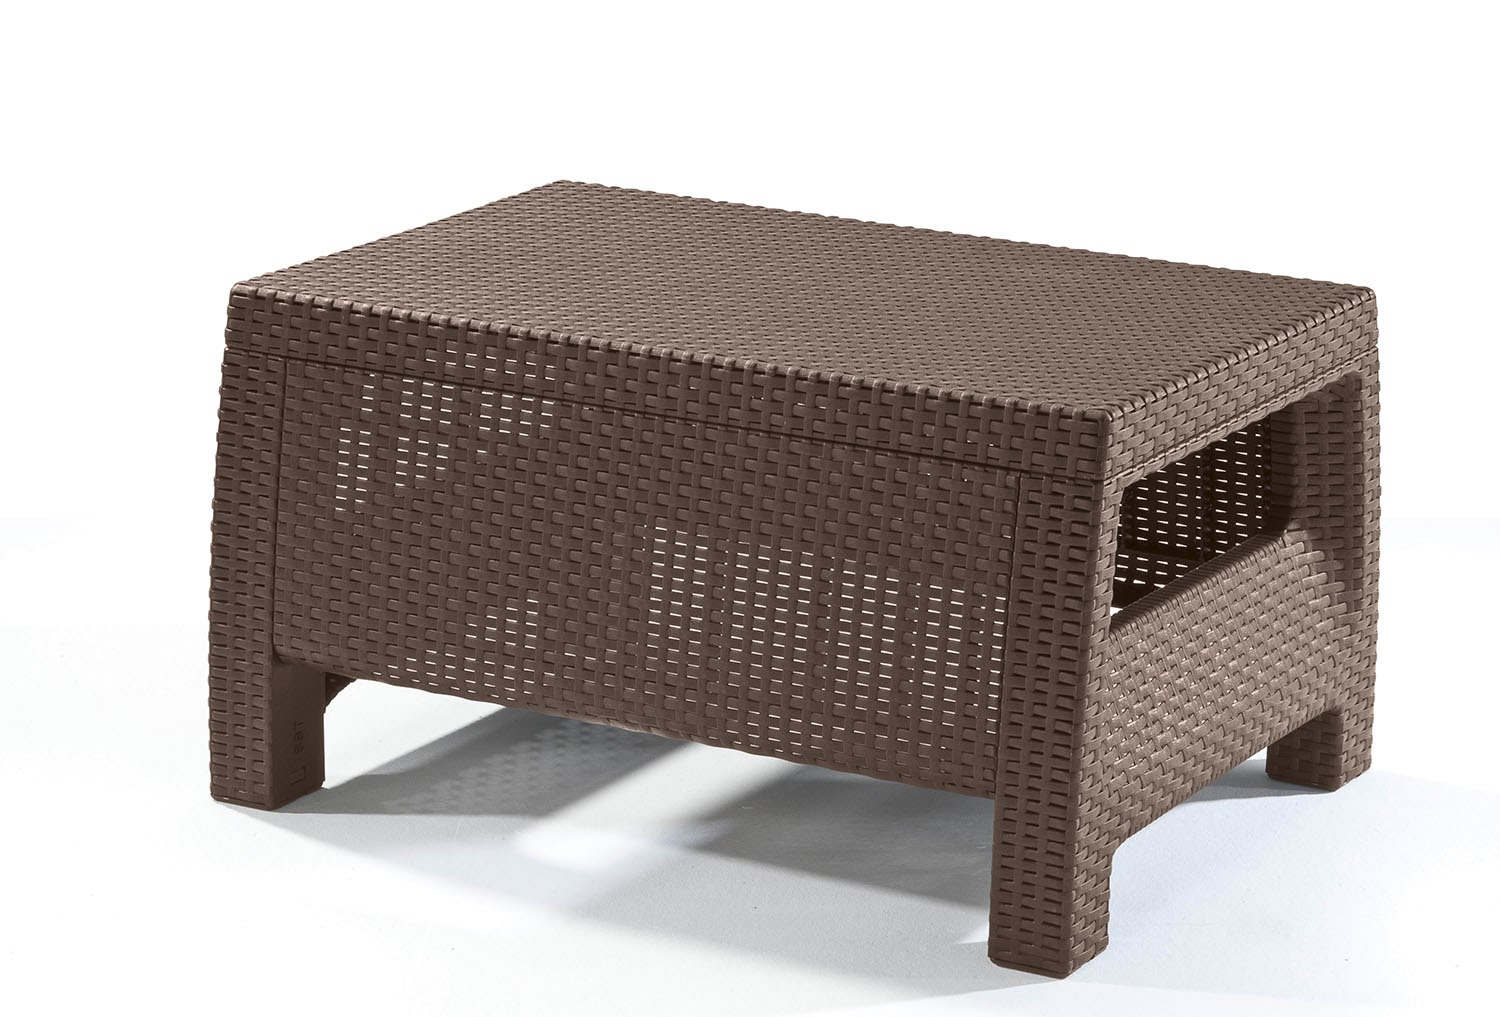 Lovely Keter Corfu Resin Coffee Table, All Weather Plastic Patio Furniture, Brown  Rattan